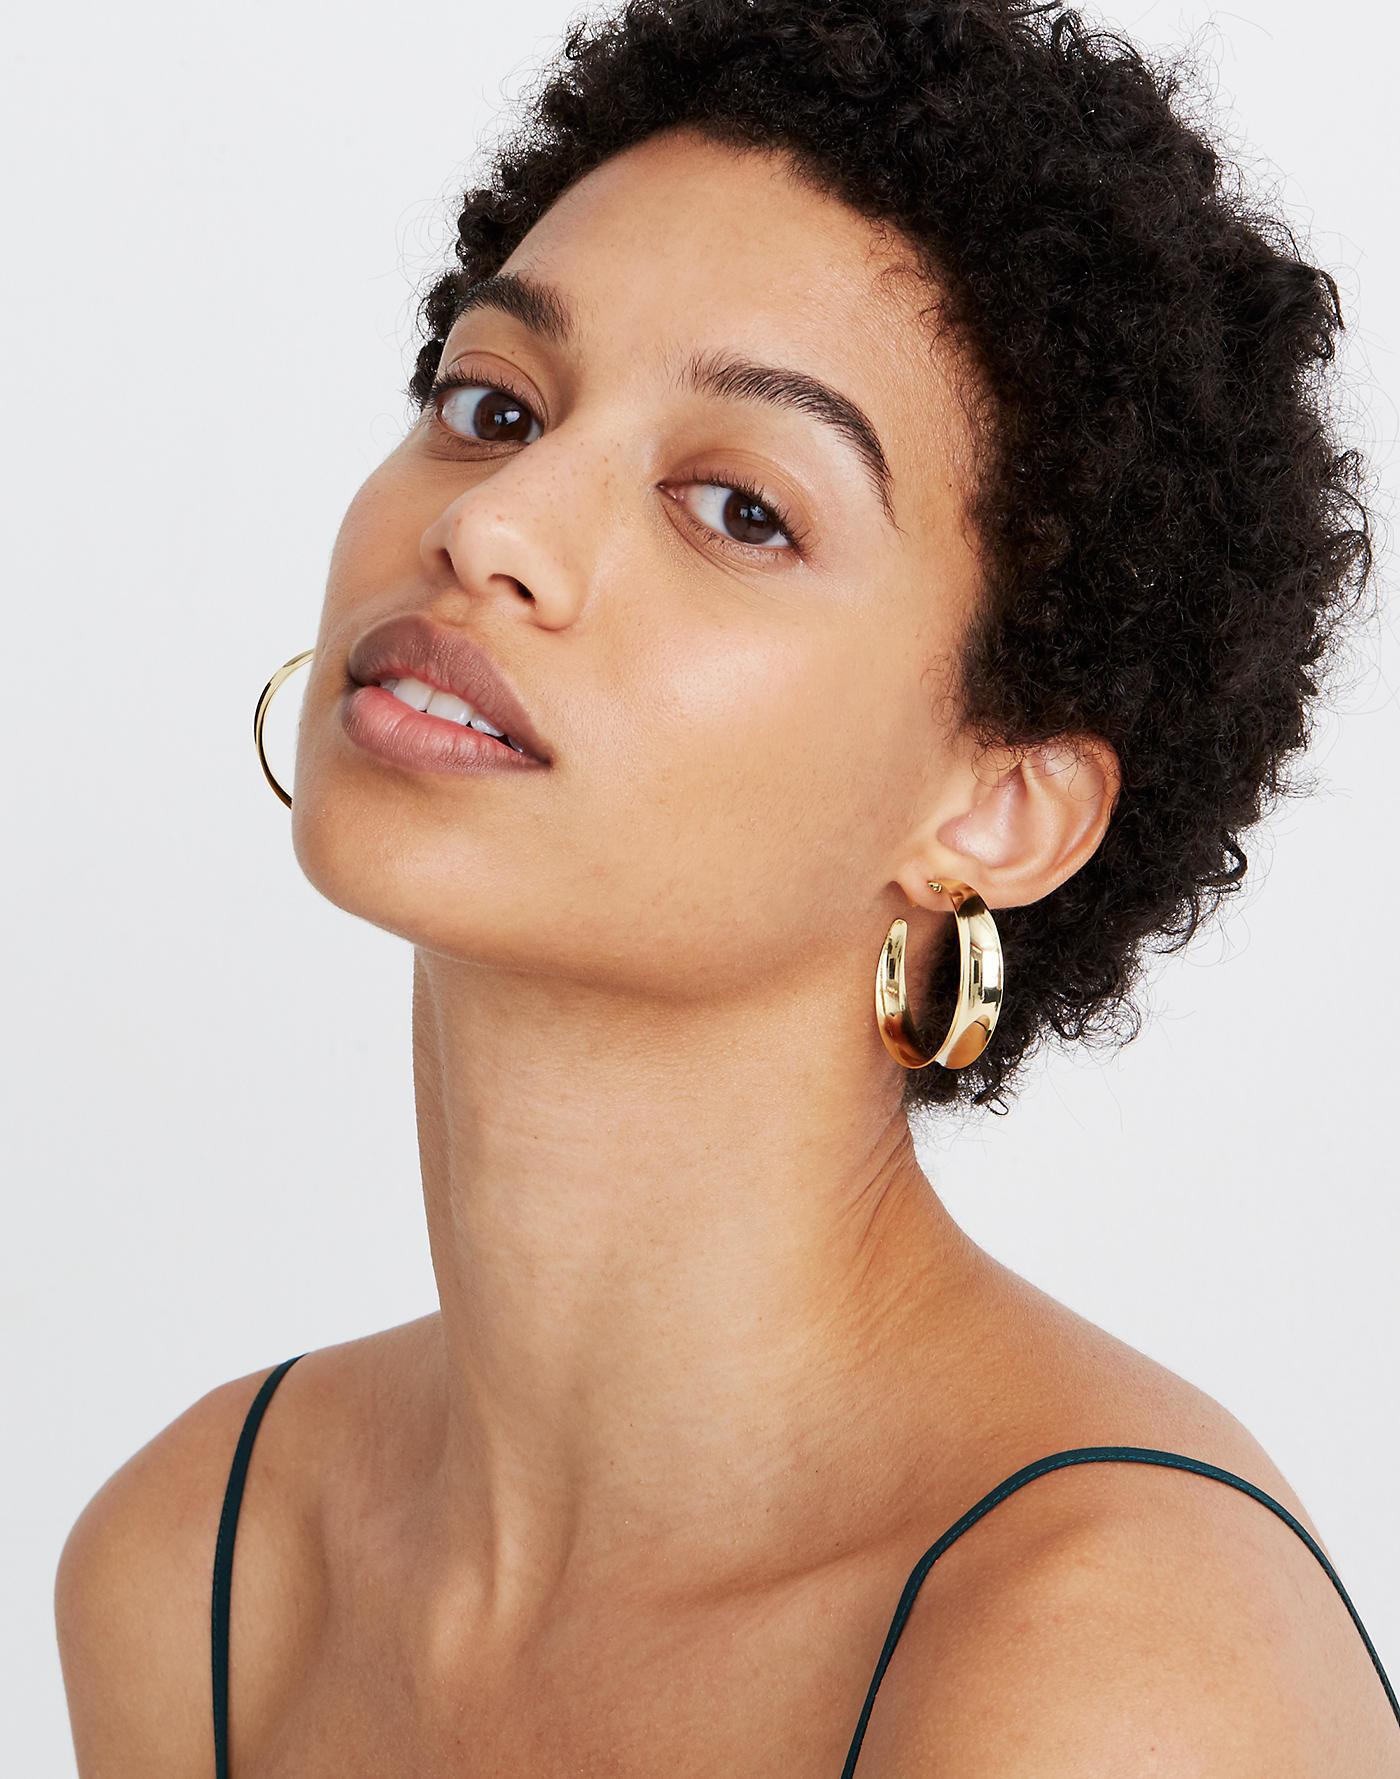 Model wearing the oversized sculptural earrings in gold